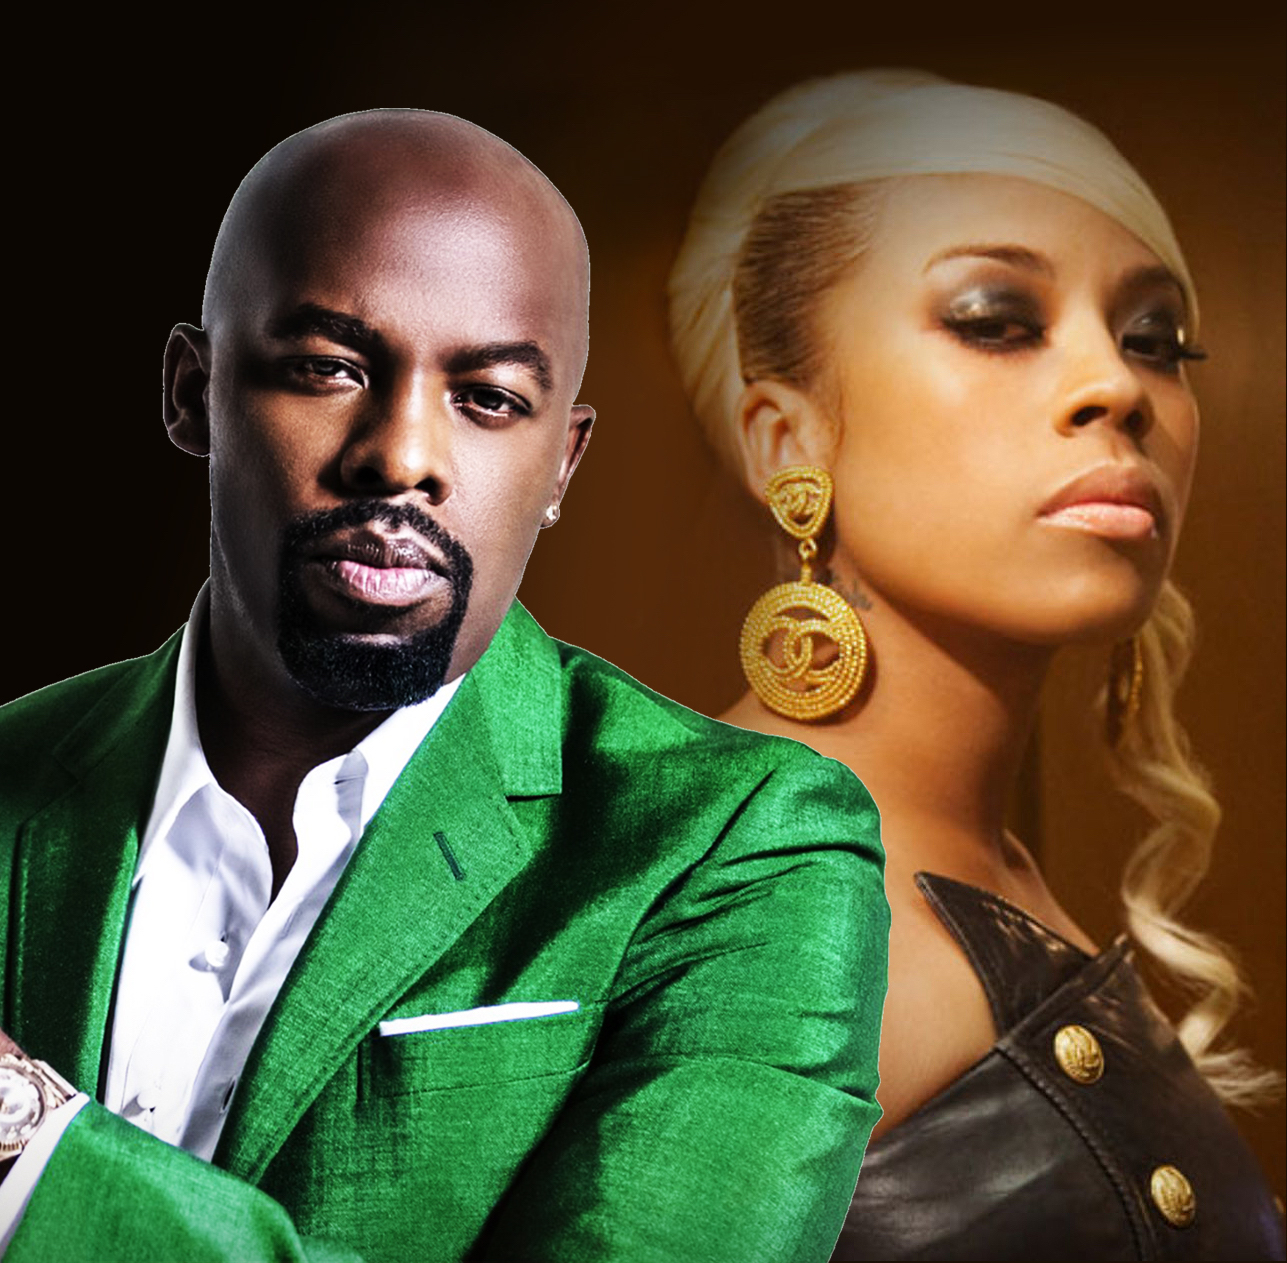 US Singers Joe & Keyshia Cole Announce Their Exclusive UK Tour